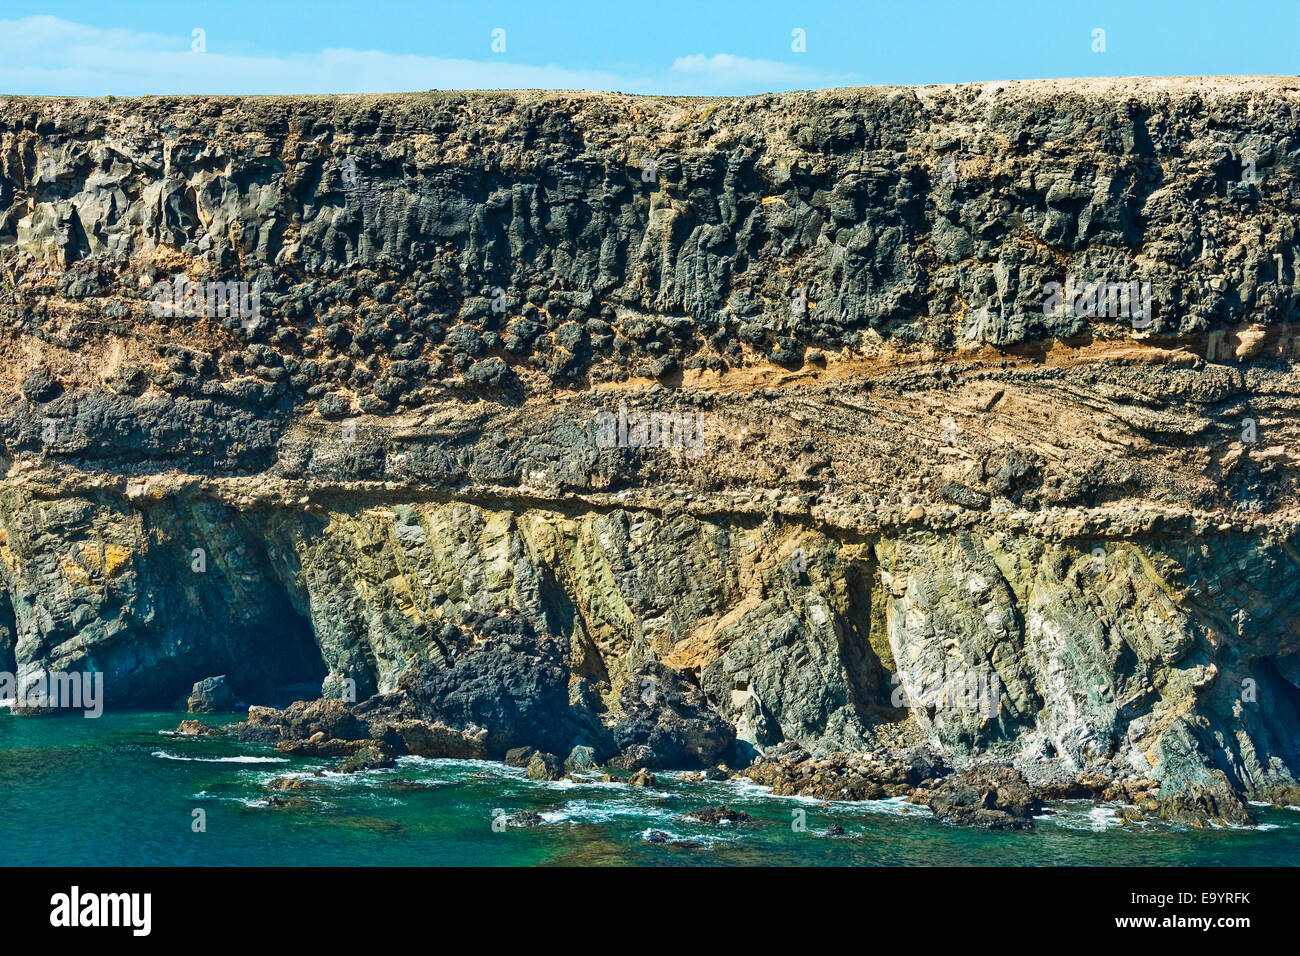 Pillow lava that formed underwater on unconformity of Jurassic & Pliocene sediments at Caleta Negra; Ajuy, Fuerteventura, - Stock Image